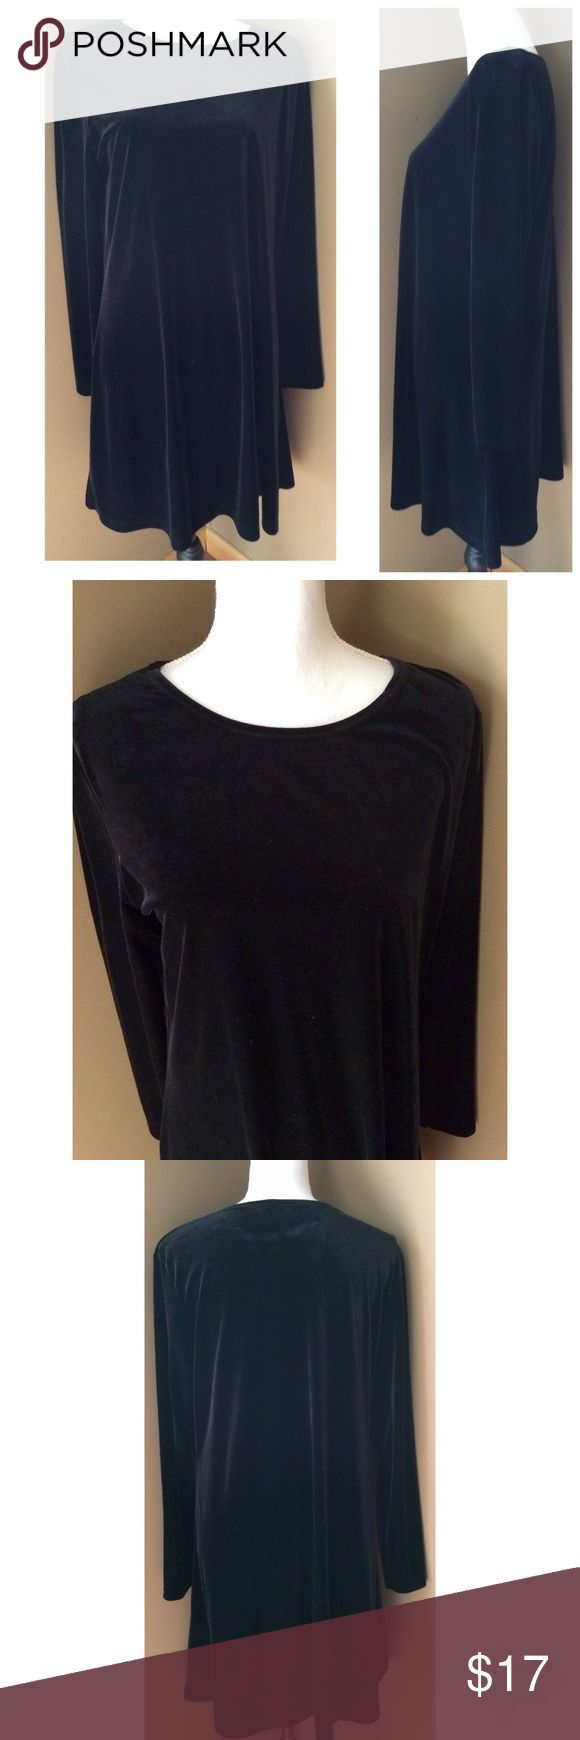 """Hunt Club Black Long Sleeve Velvet Pullover Dress Beautiful basic black dress from Hunt Club Good used condition - gently worn Long Sleeve, gently flared - crushed velvet Polyester/Spandex Size 10 --- Pit to Pit: 20"""" with stretch available --- Waist: 42"""" --- Length: 35"""" hunt club Dresses Long Sleeve"""